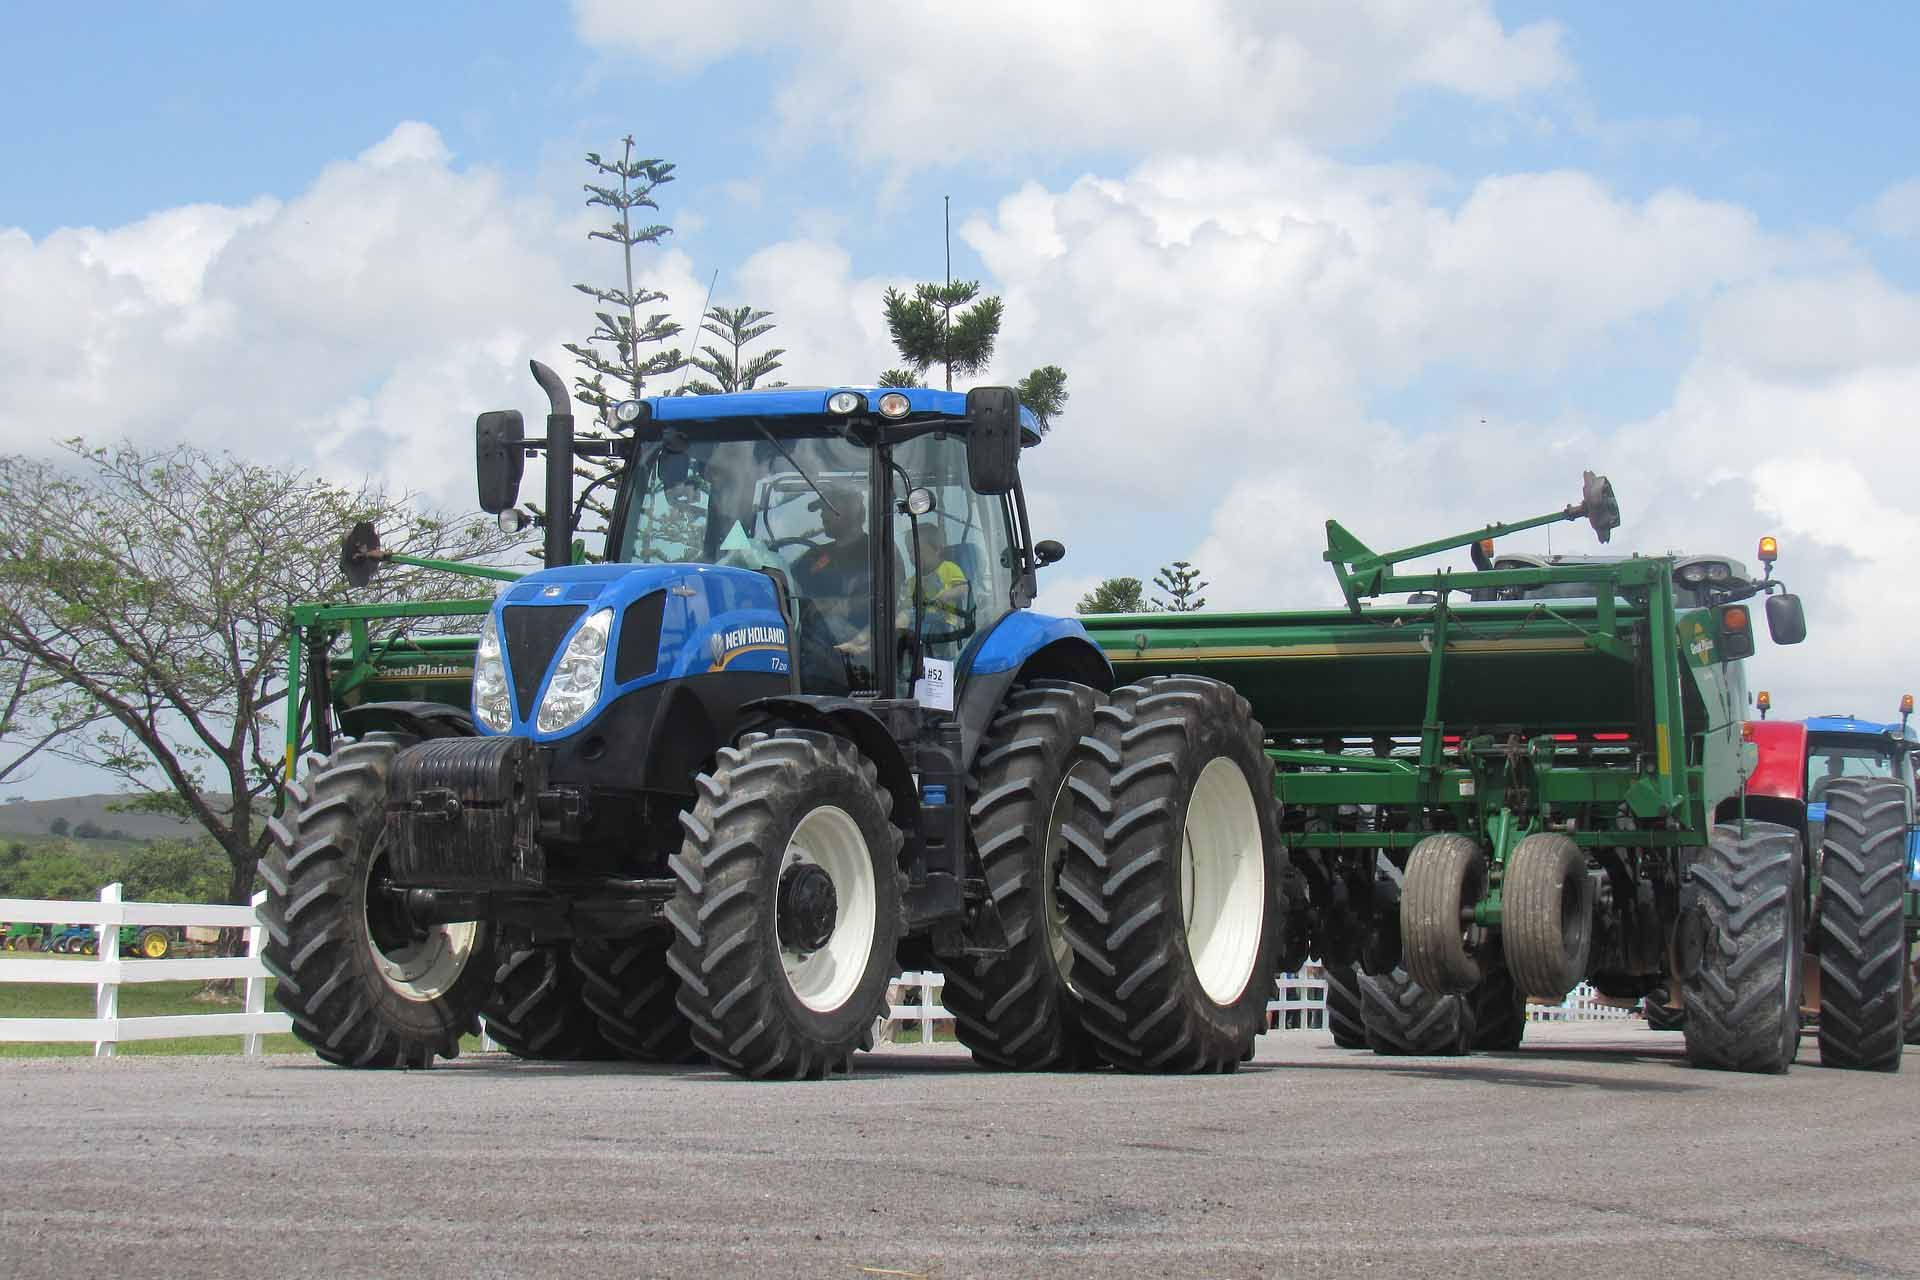 RECAMBIOS PARA NEW HOLLAND EN CANARIAS